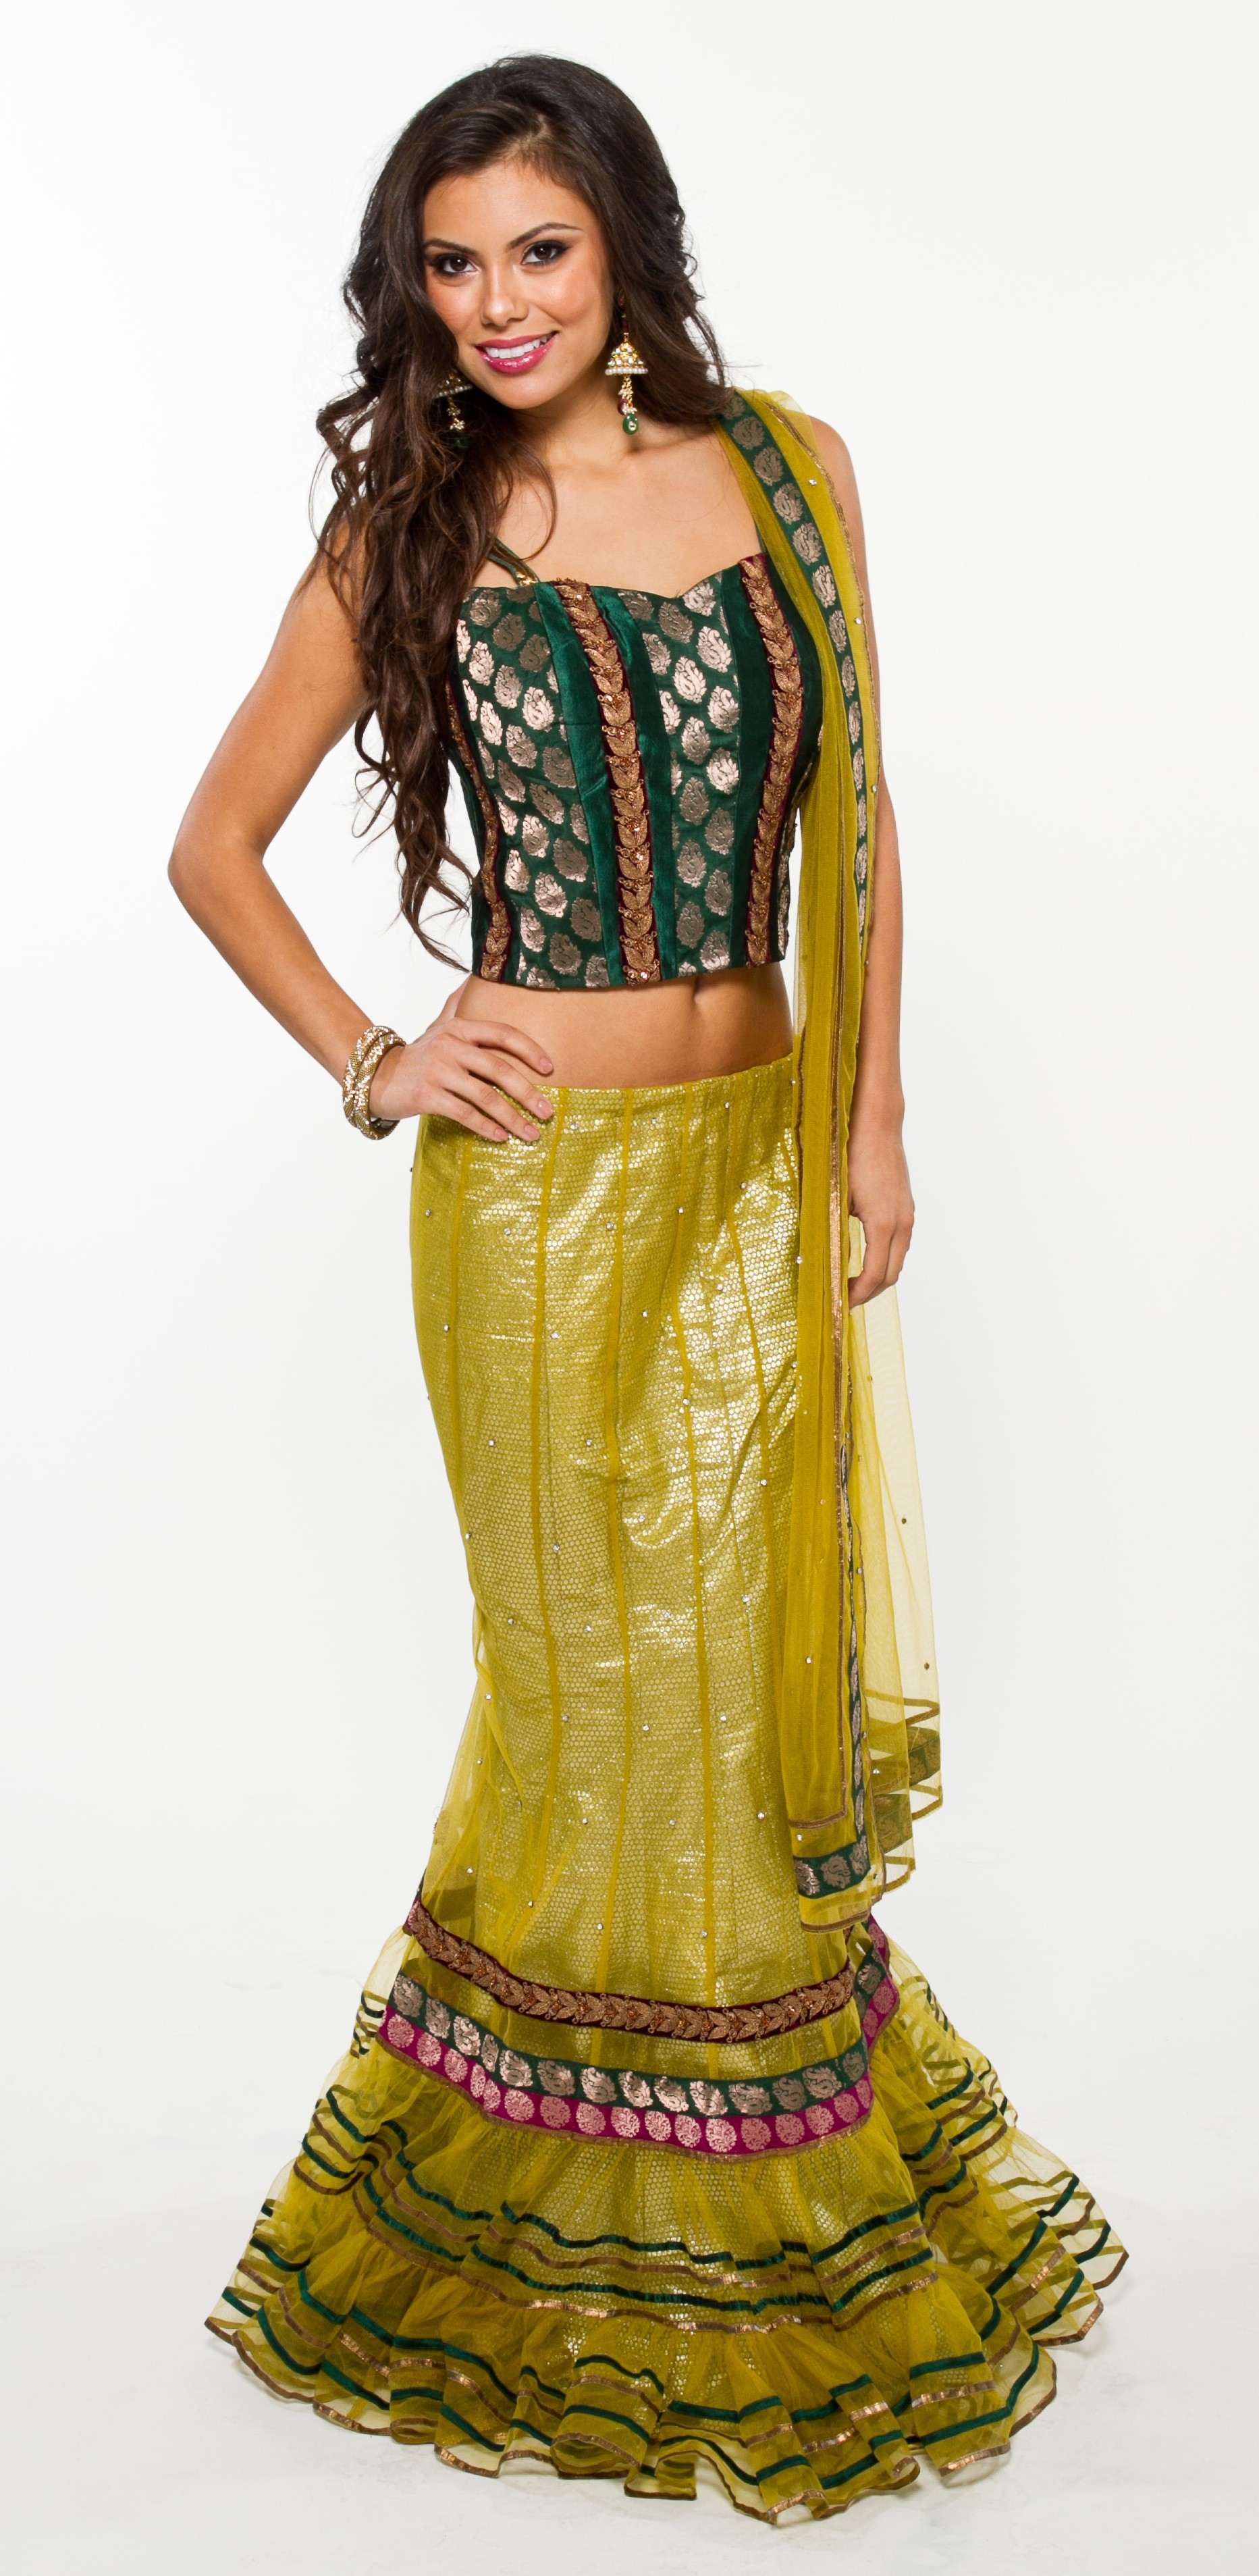 Mermaid-princess-lehenga